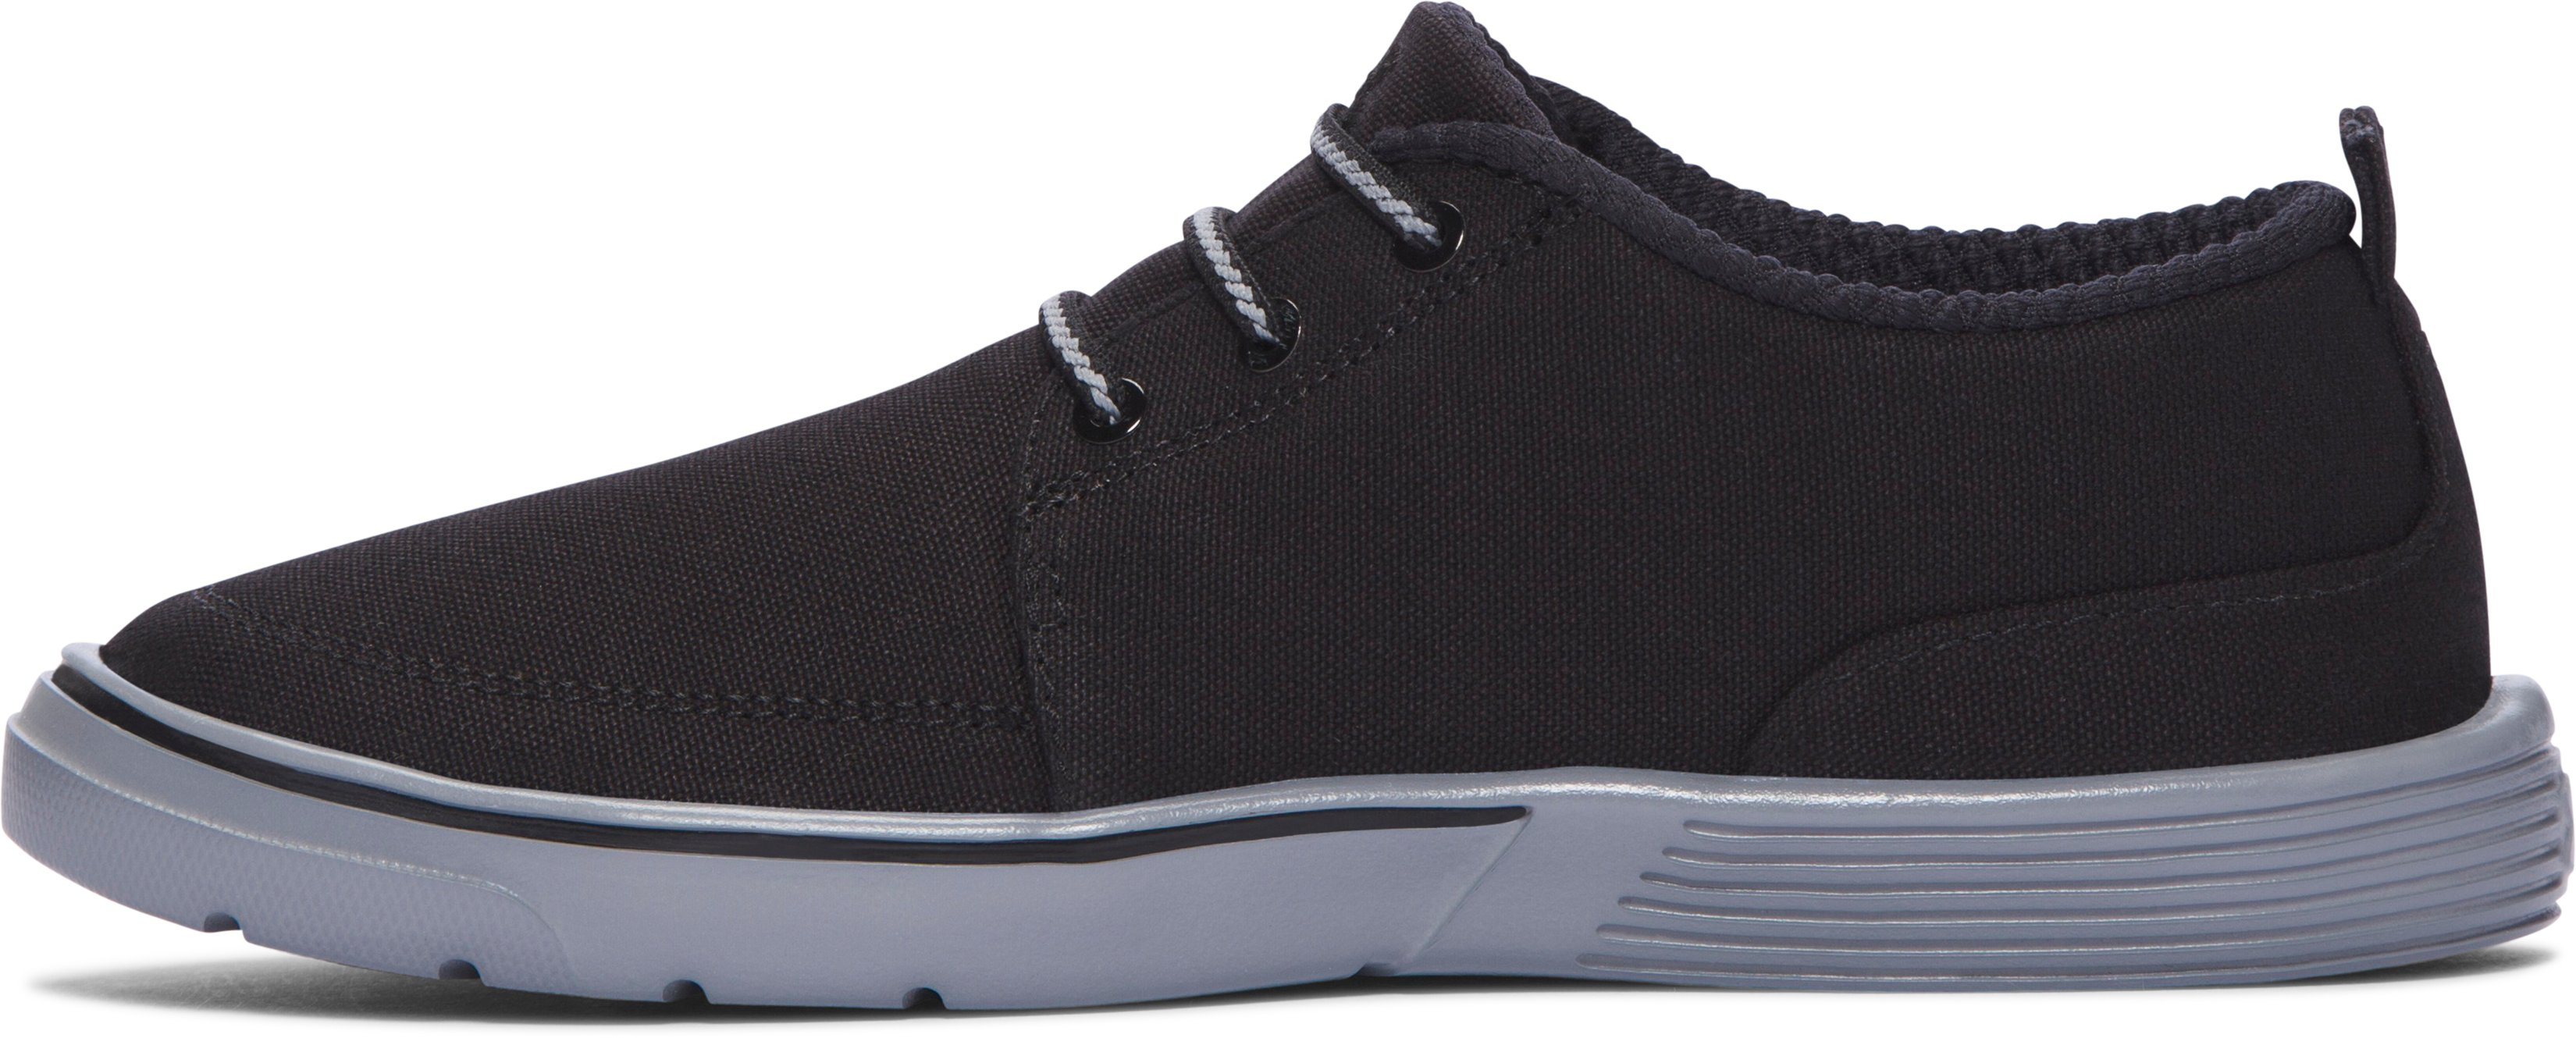 Boys' UA Street Encounter III Shoes, Black